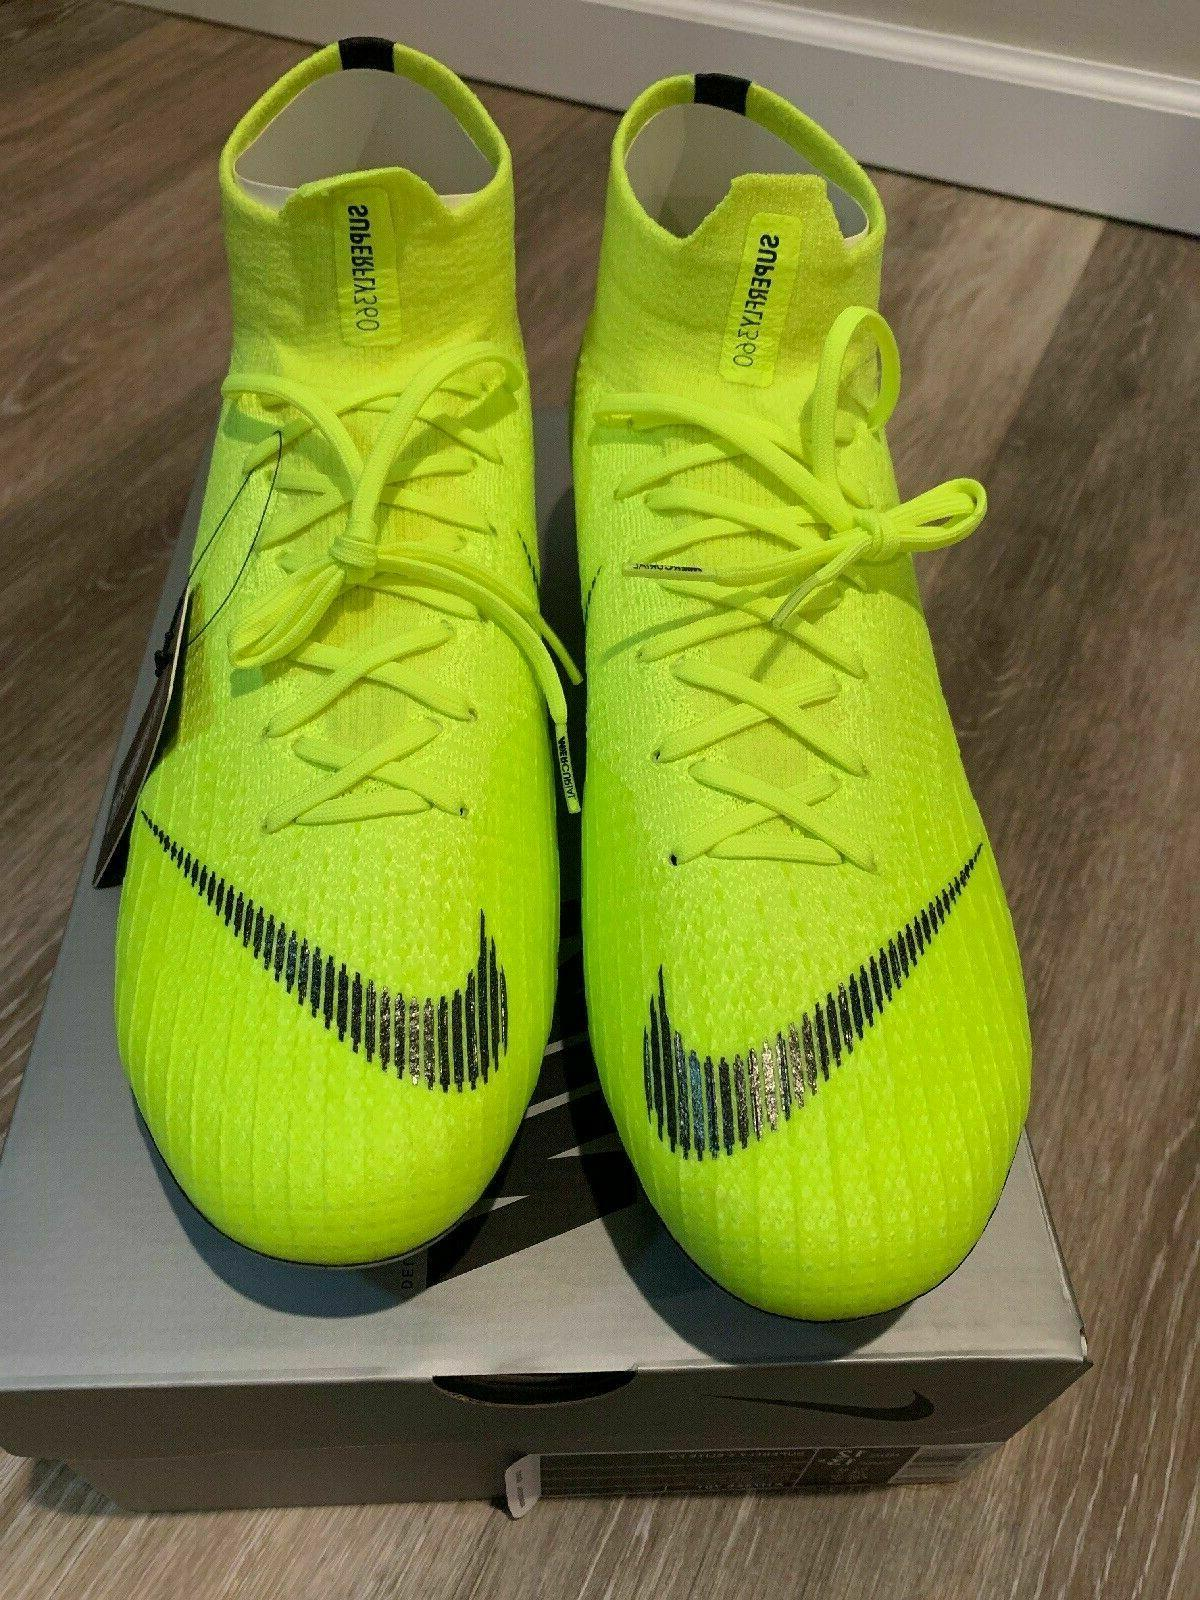 Nike Mercurial 6 Elite Cleats